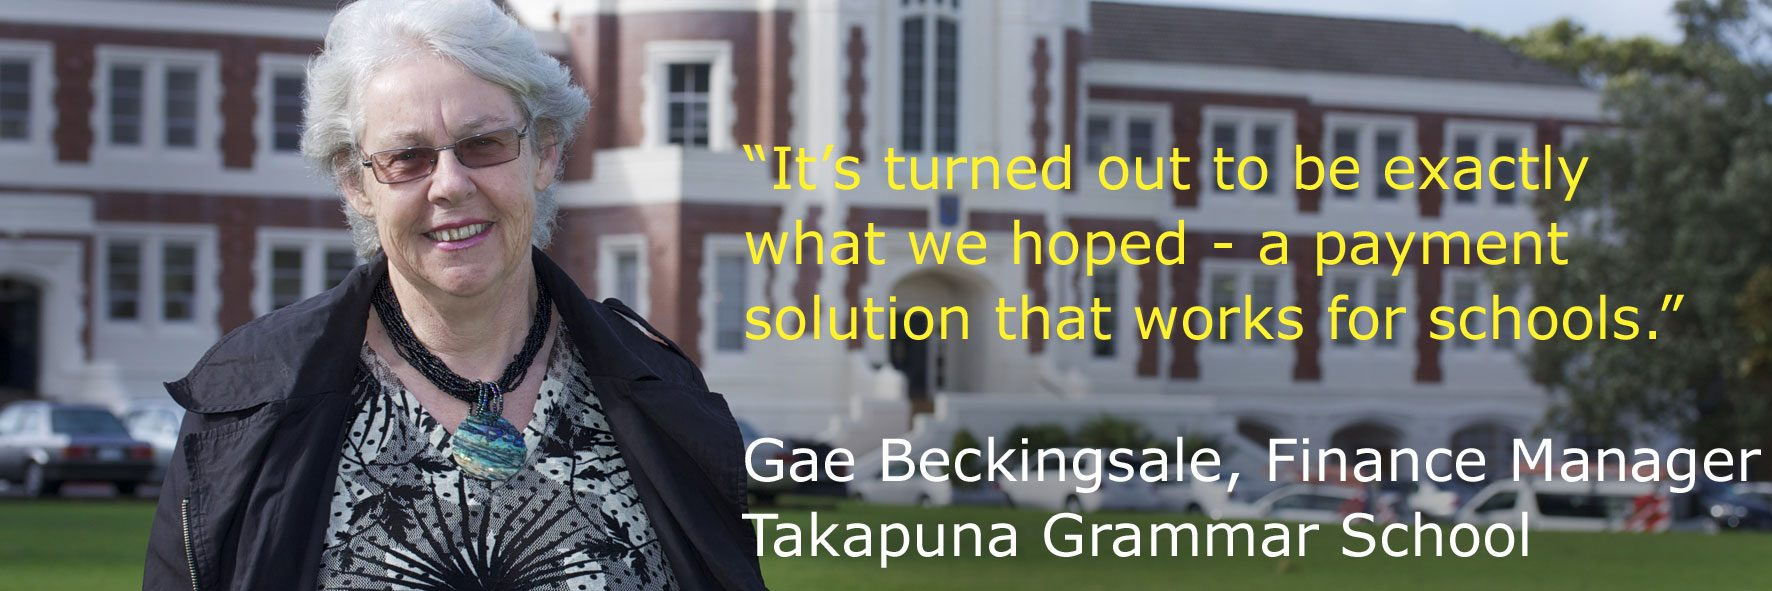 Takapuna Grammar School finds payment solution